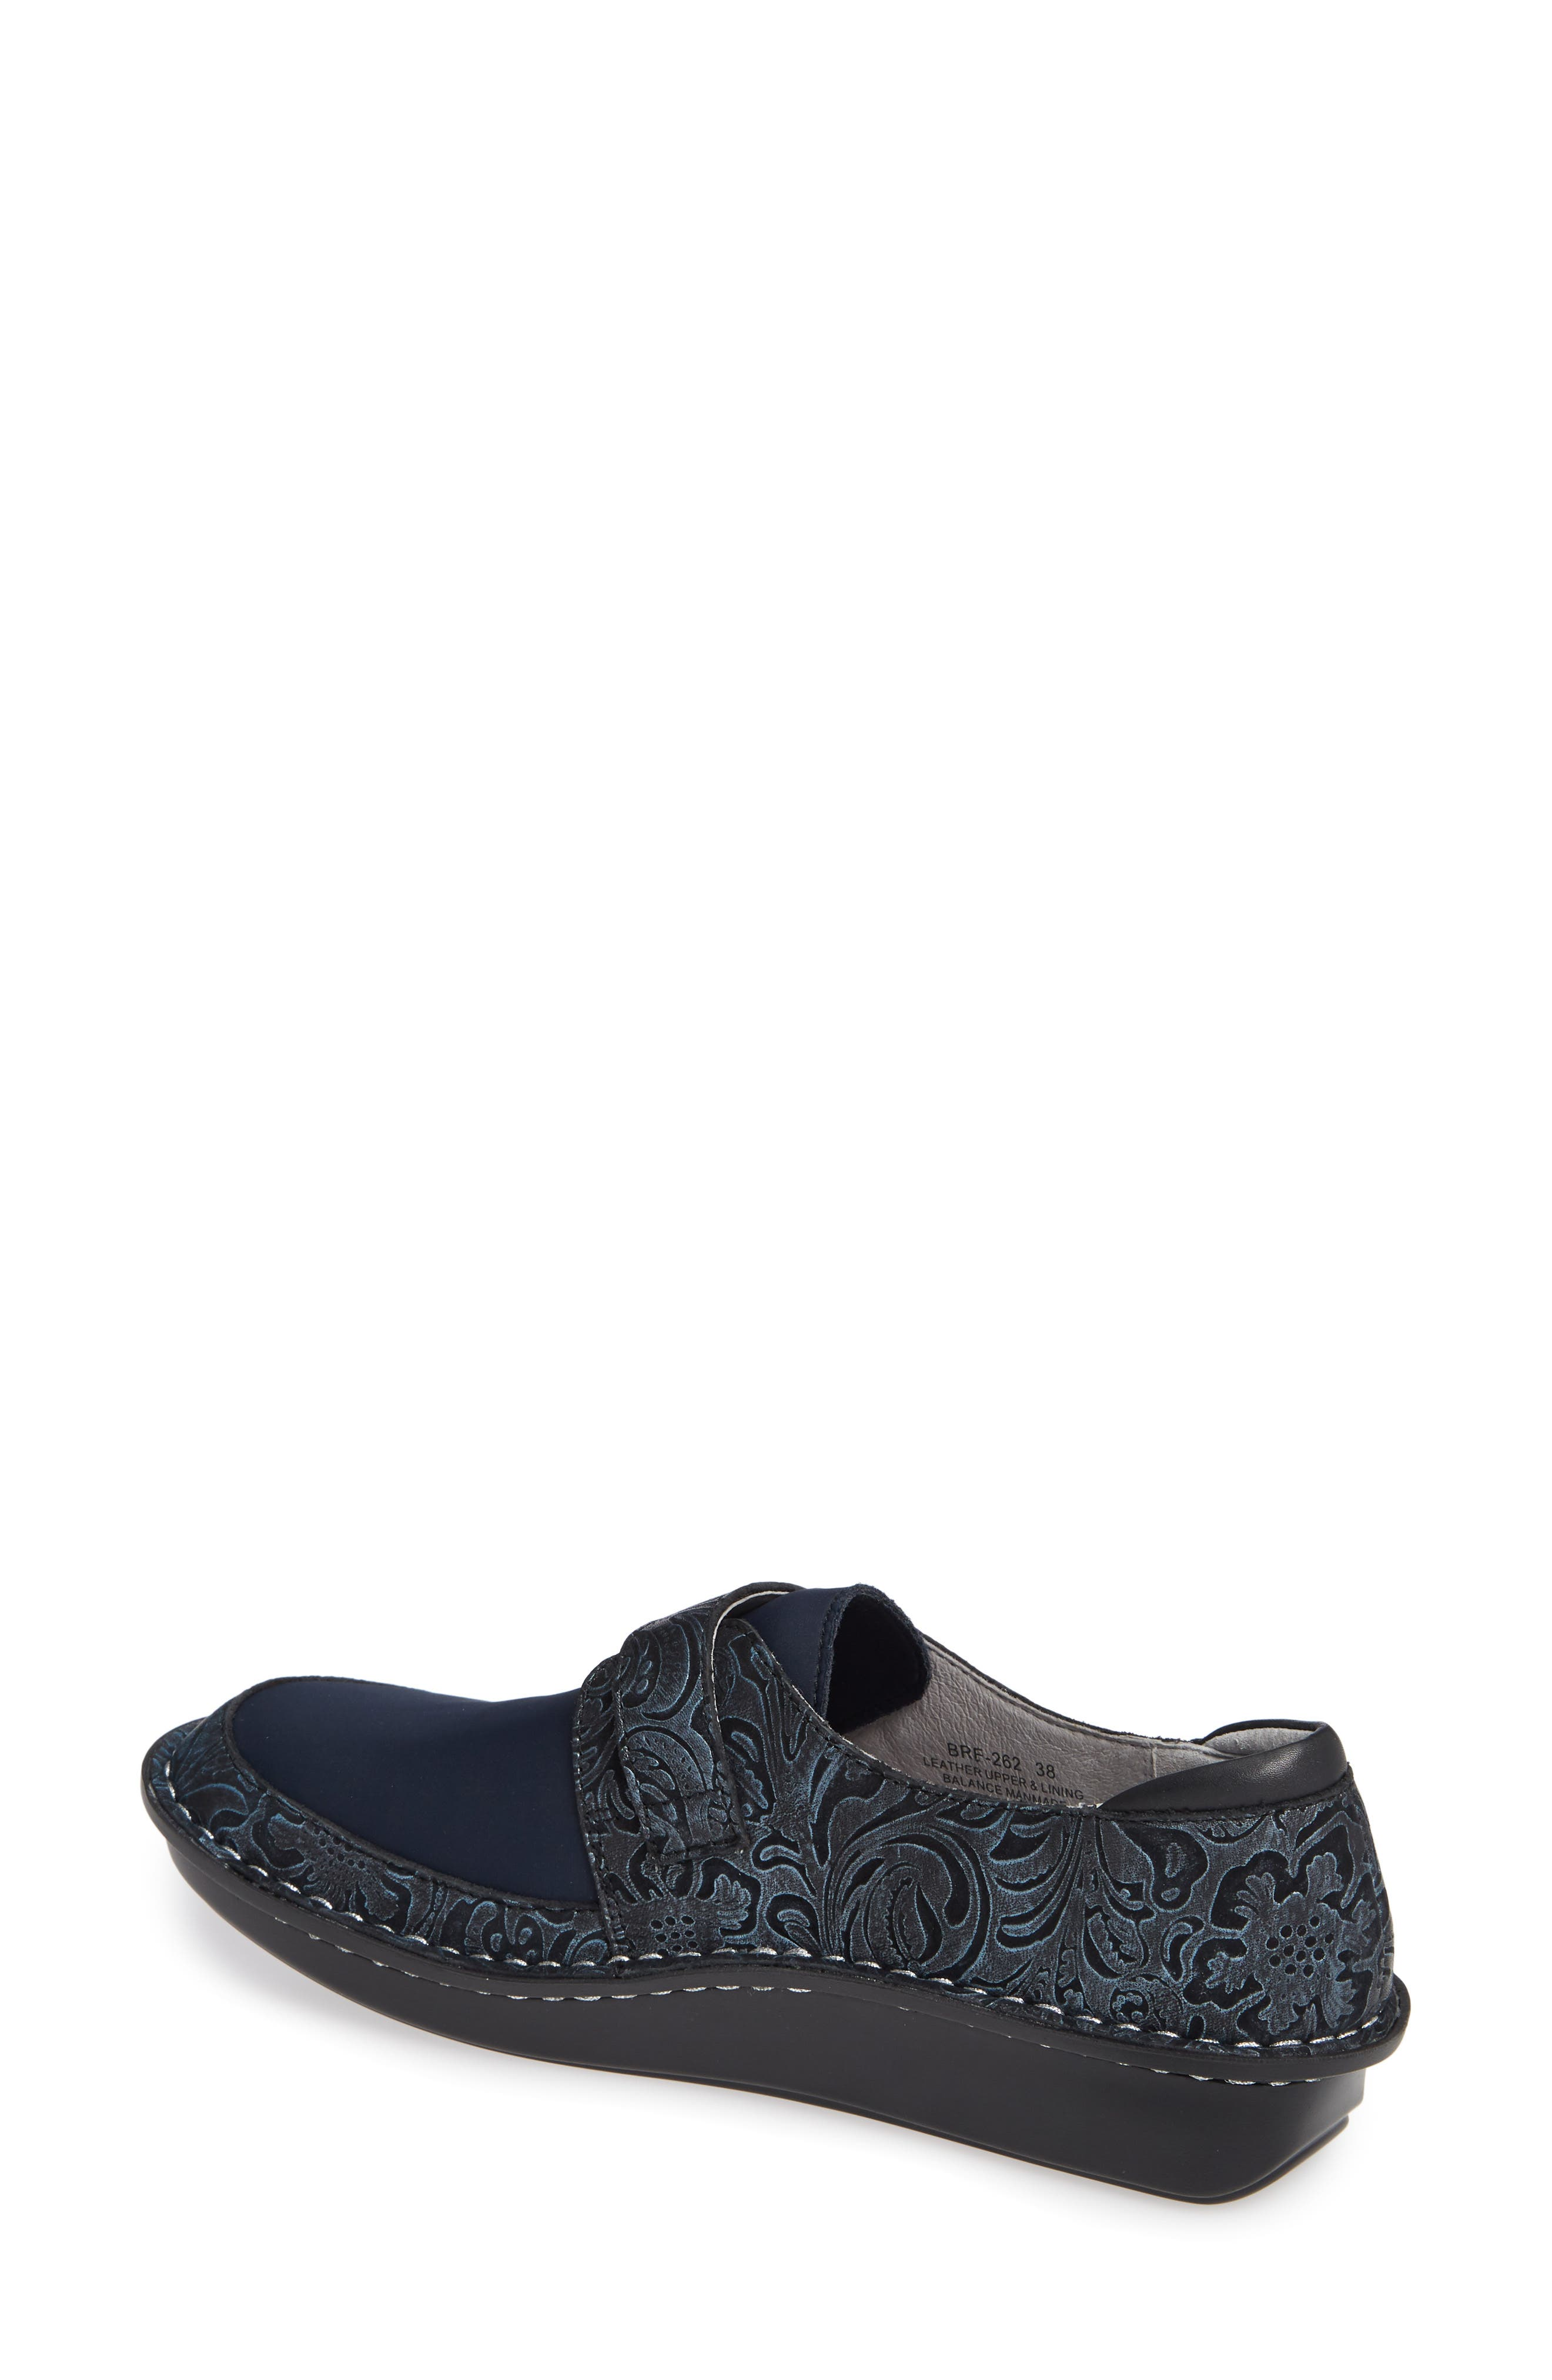 ALEGRIA, Brenna Slip-On, Alternate thumbnail 2, color, NAVY SWISH LEATHER